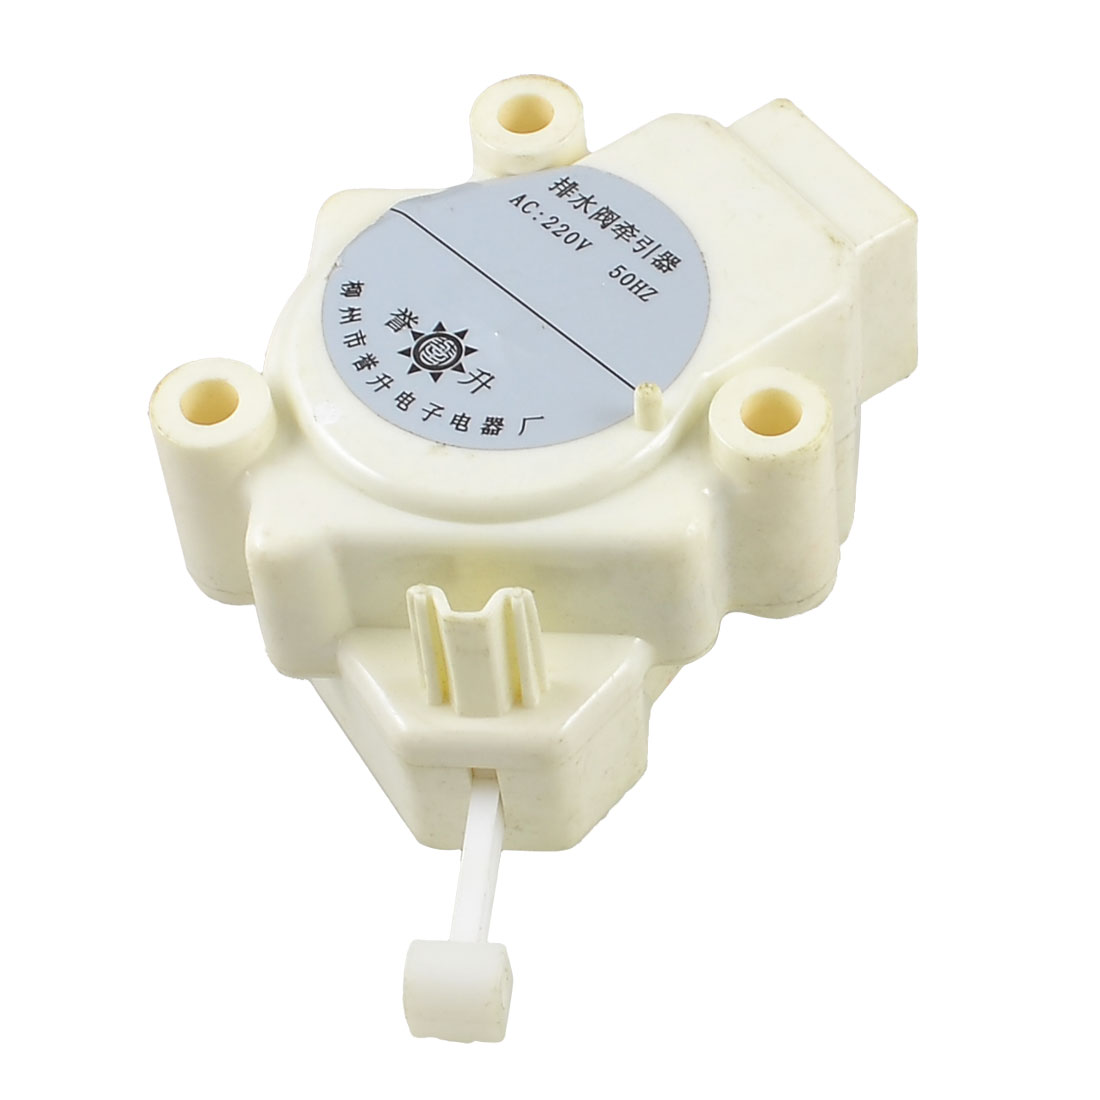 Replacement AC 220V 50Hz Drain Valve Retractor for Haier Washing Machine